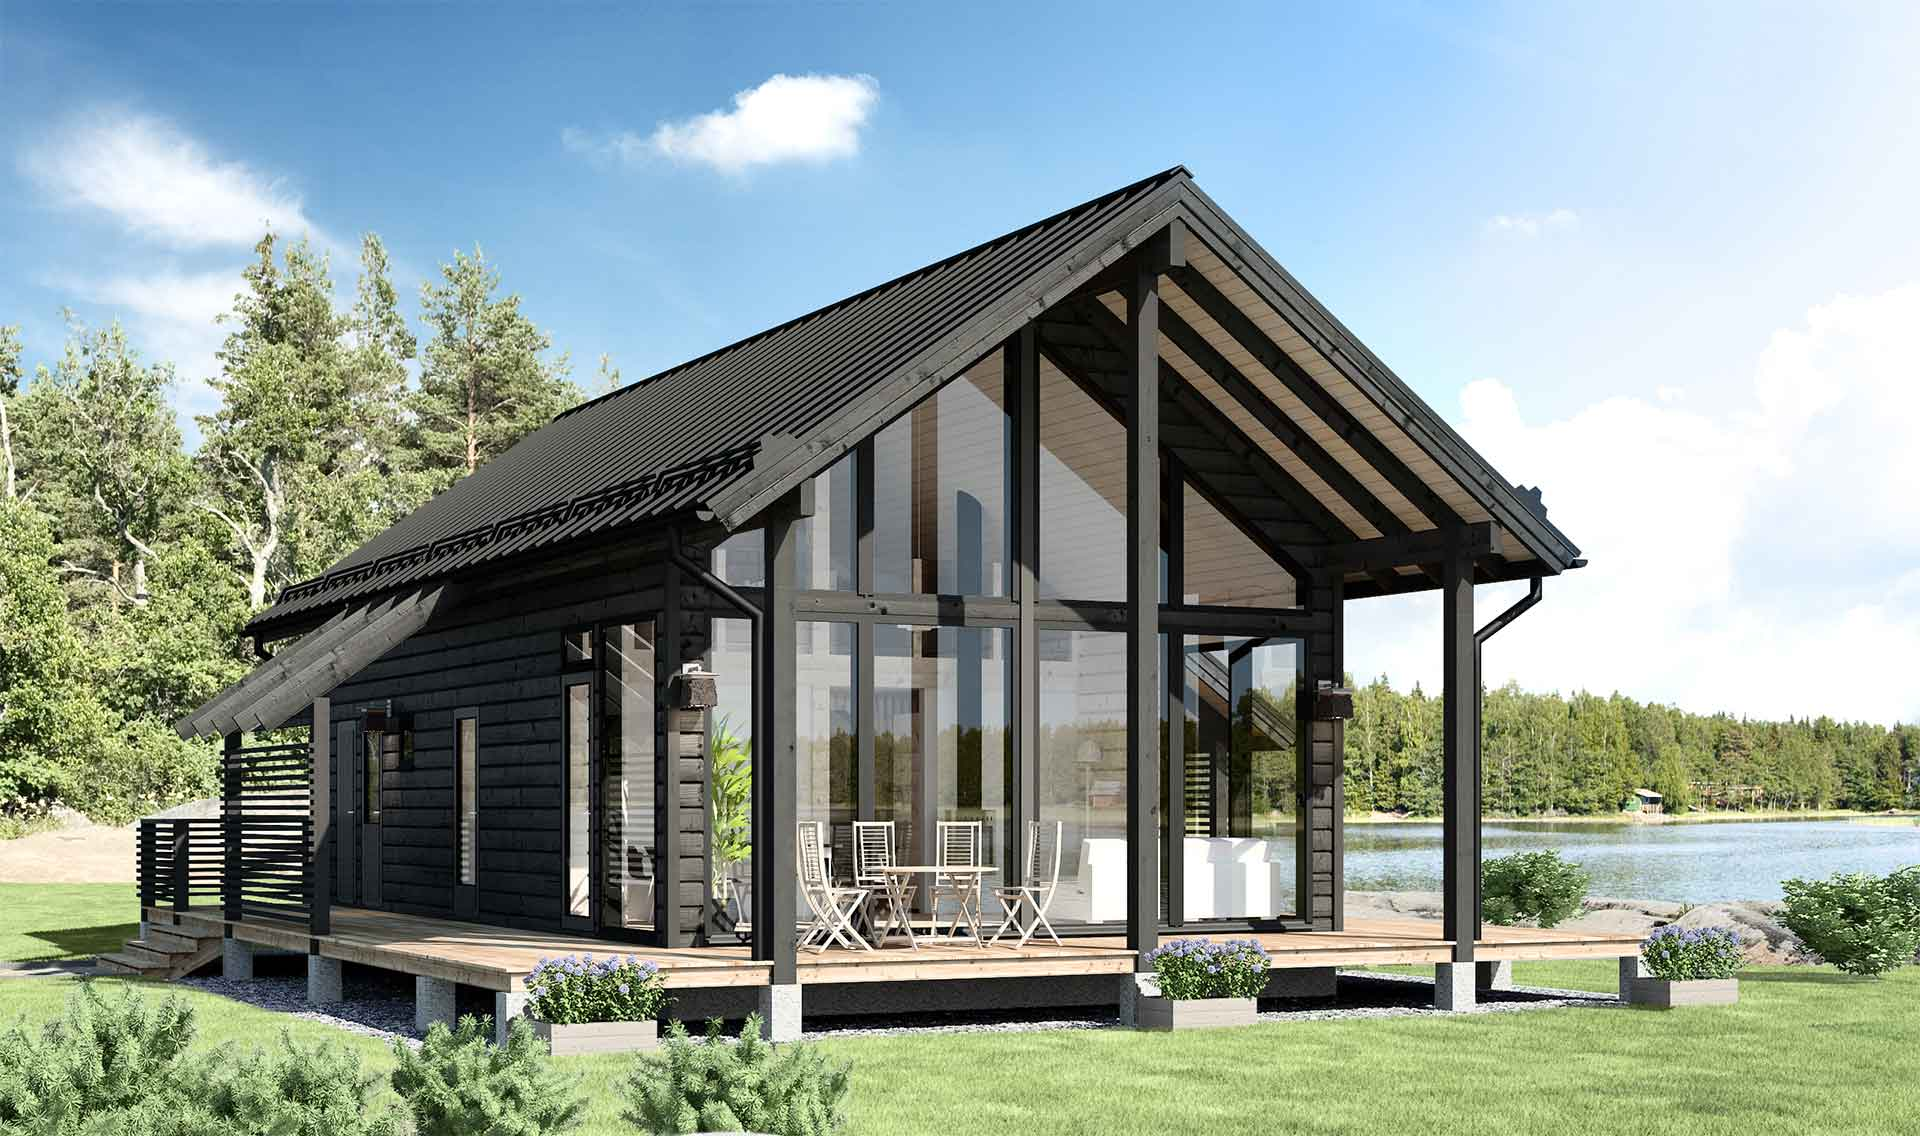 Finnish Prefab Log Cabins Photos | Apartment Therapy